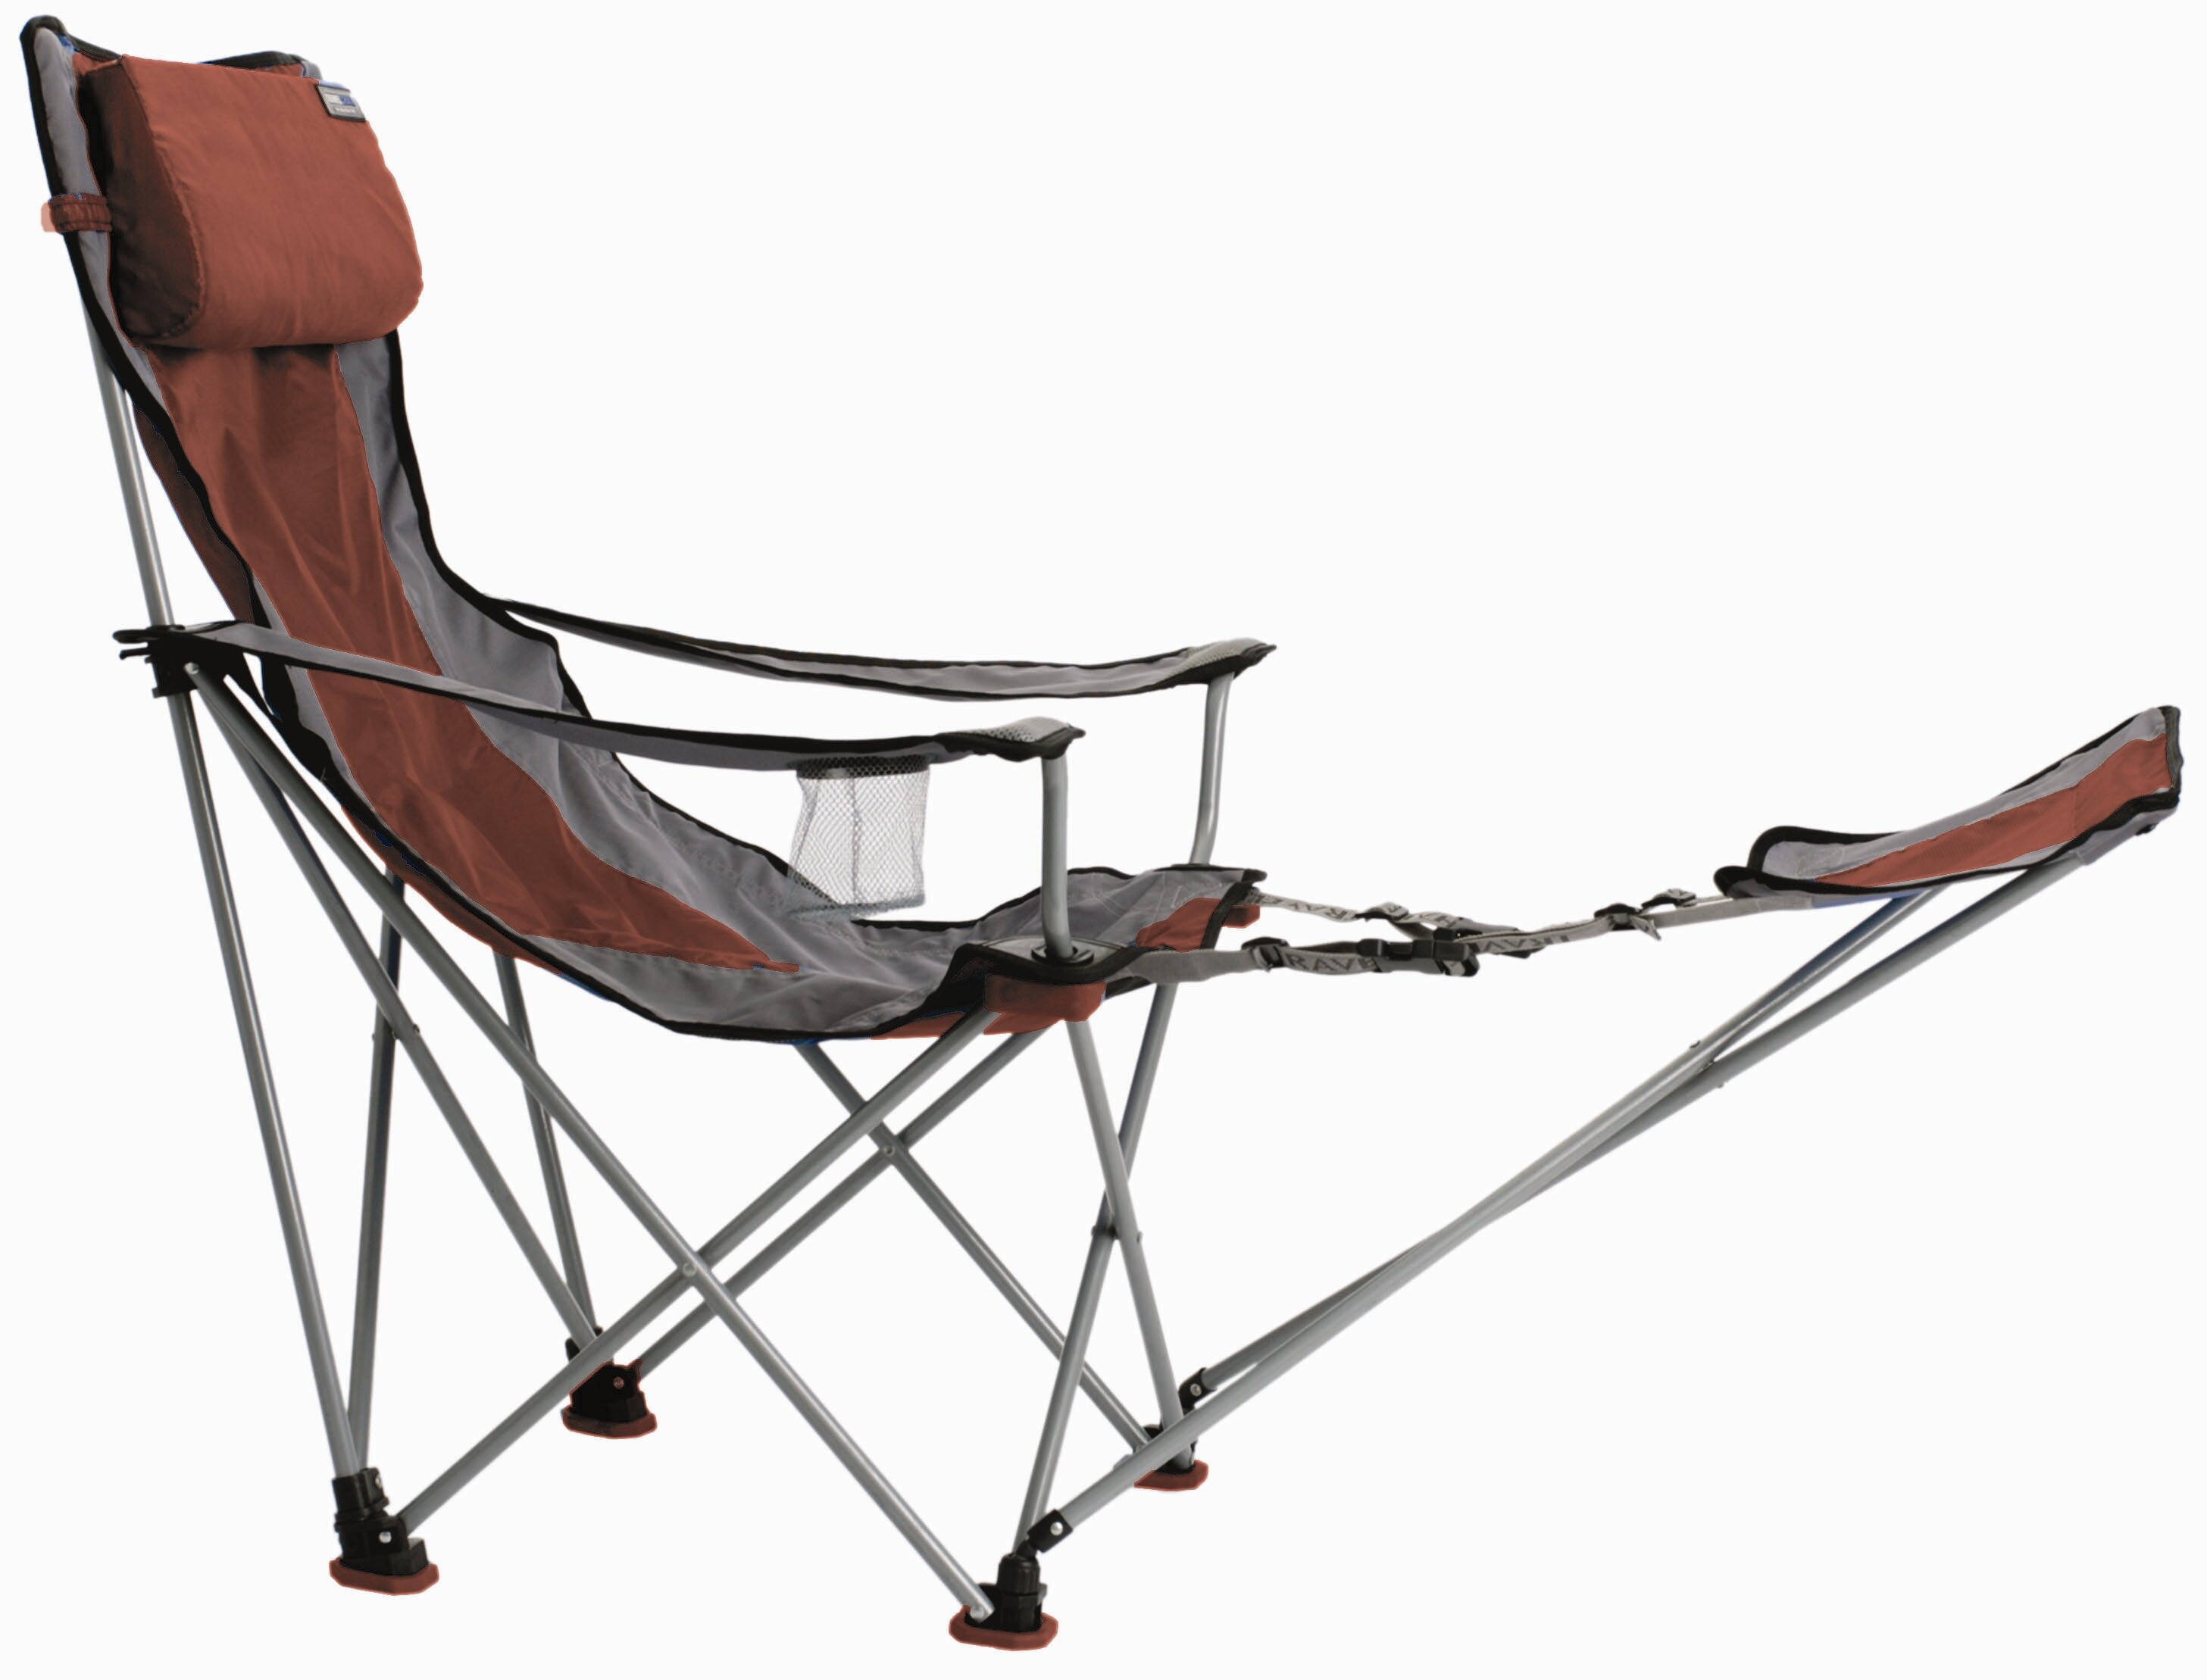 Travel Chair Folding Camping Chair with Cushion & Reviews